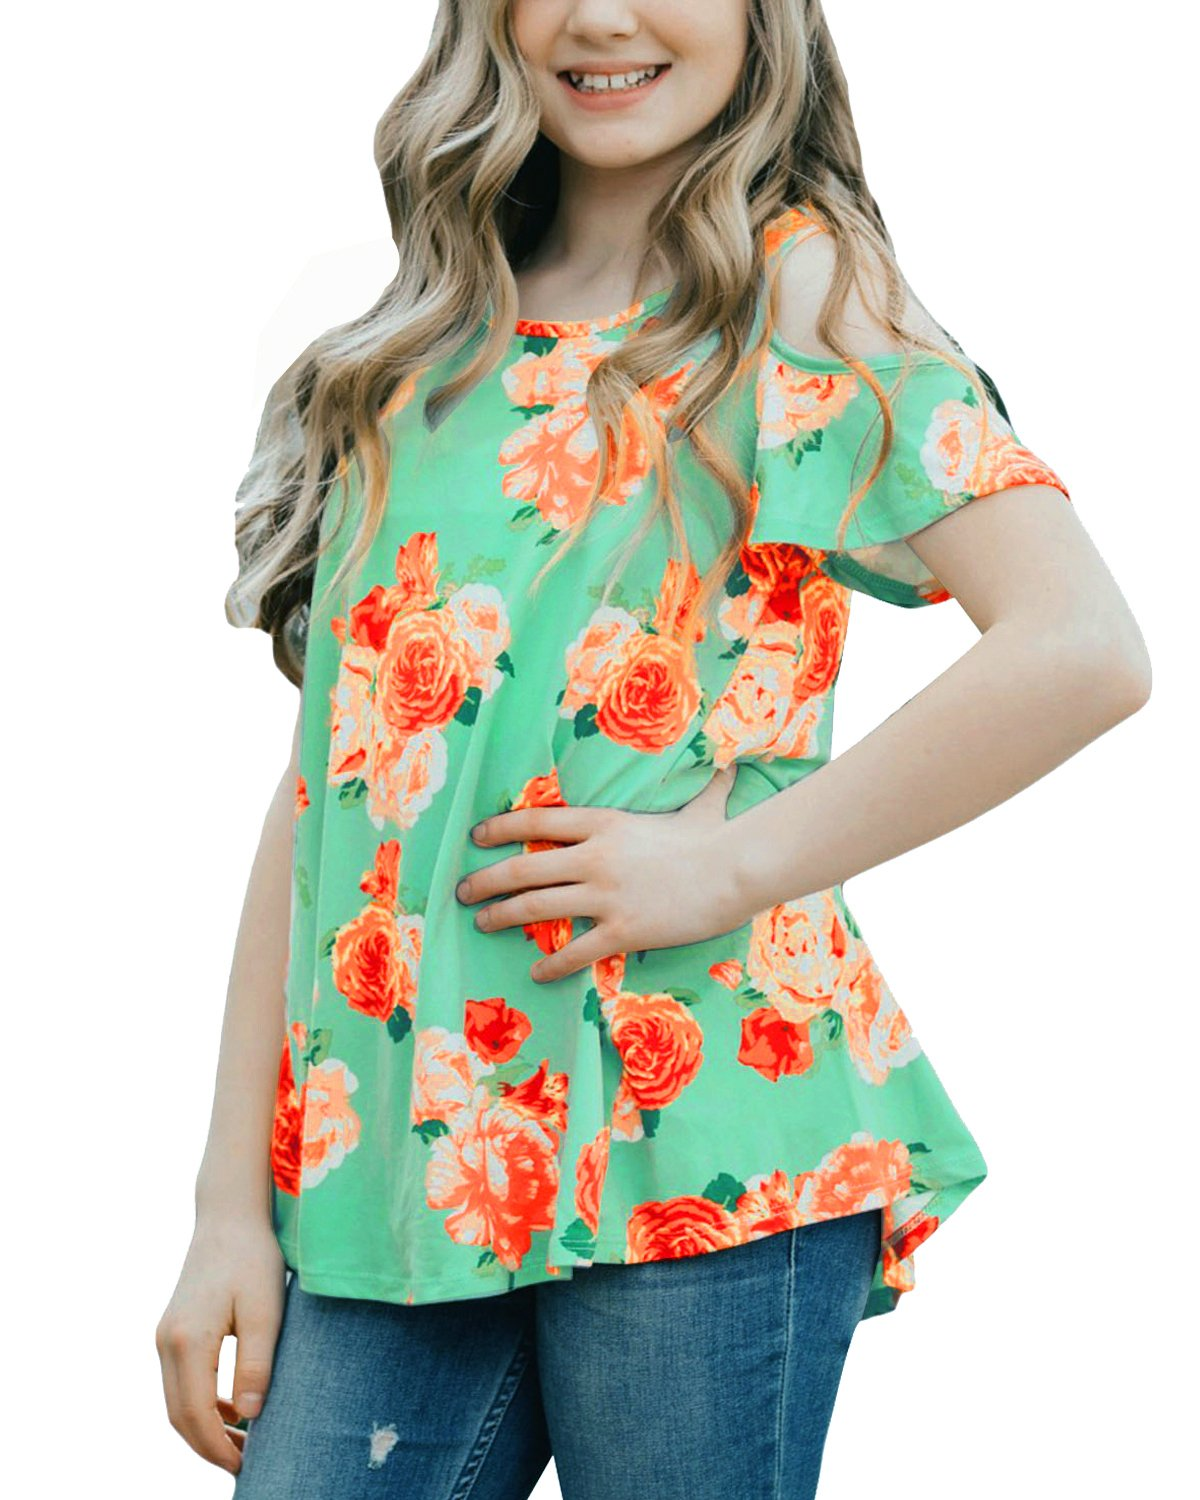 CHARMCZ Girls Short Sleeve T Shirt Floral Print Summer Fashion Cut Out Shoulder Kids Casual Loose Tunic Tops 4-13Y (A Green Flower, M (6-7Y))